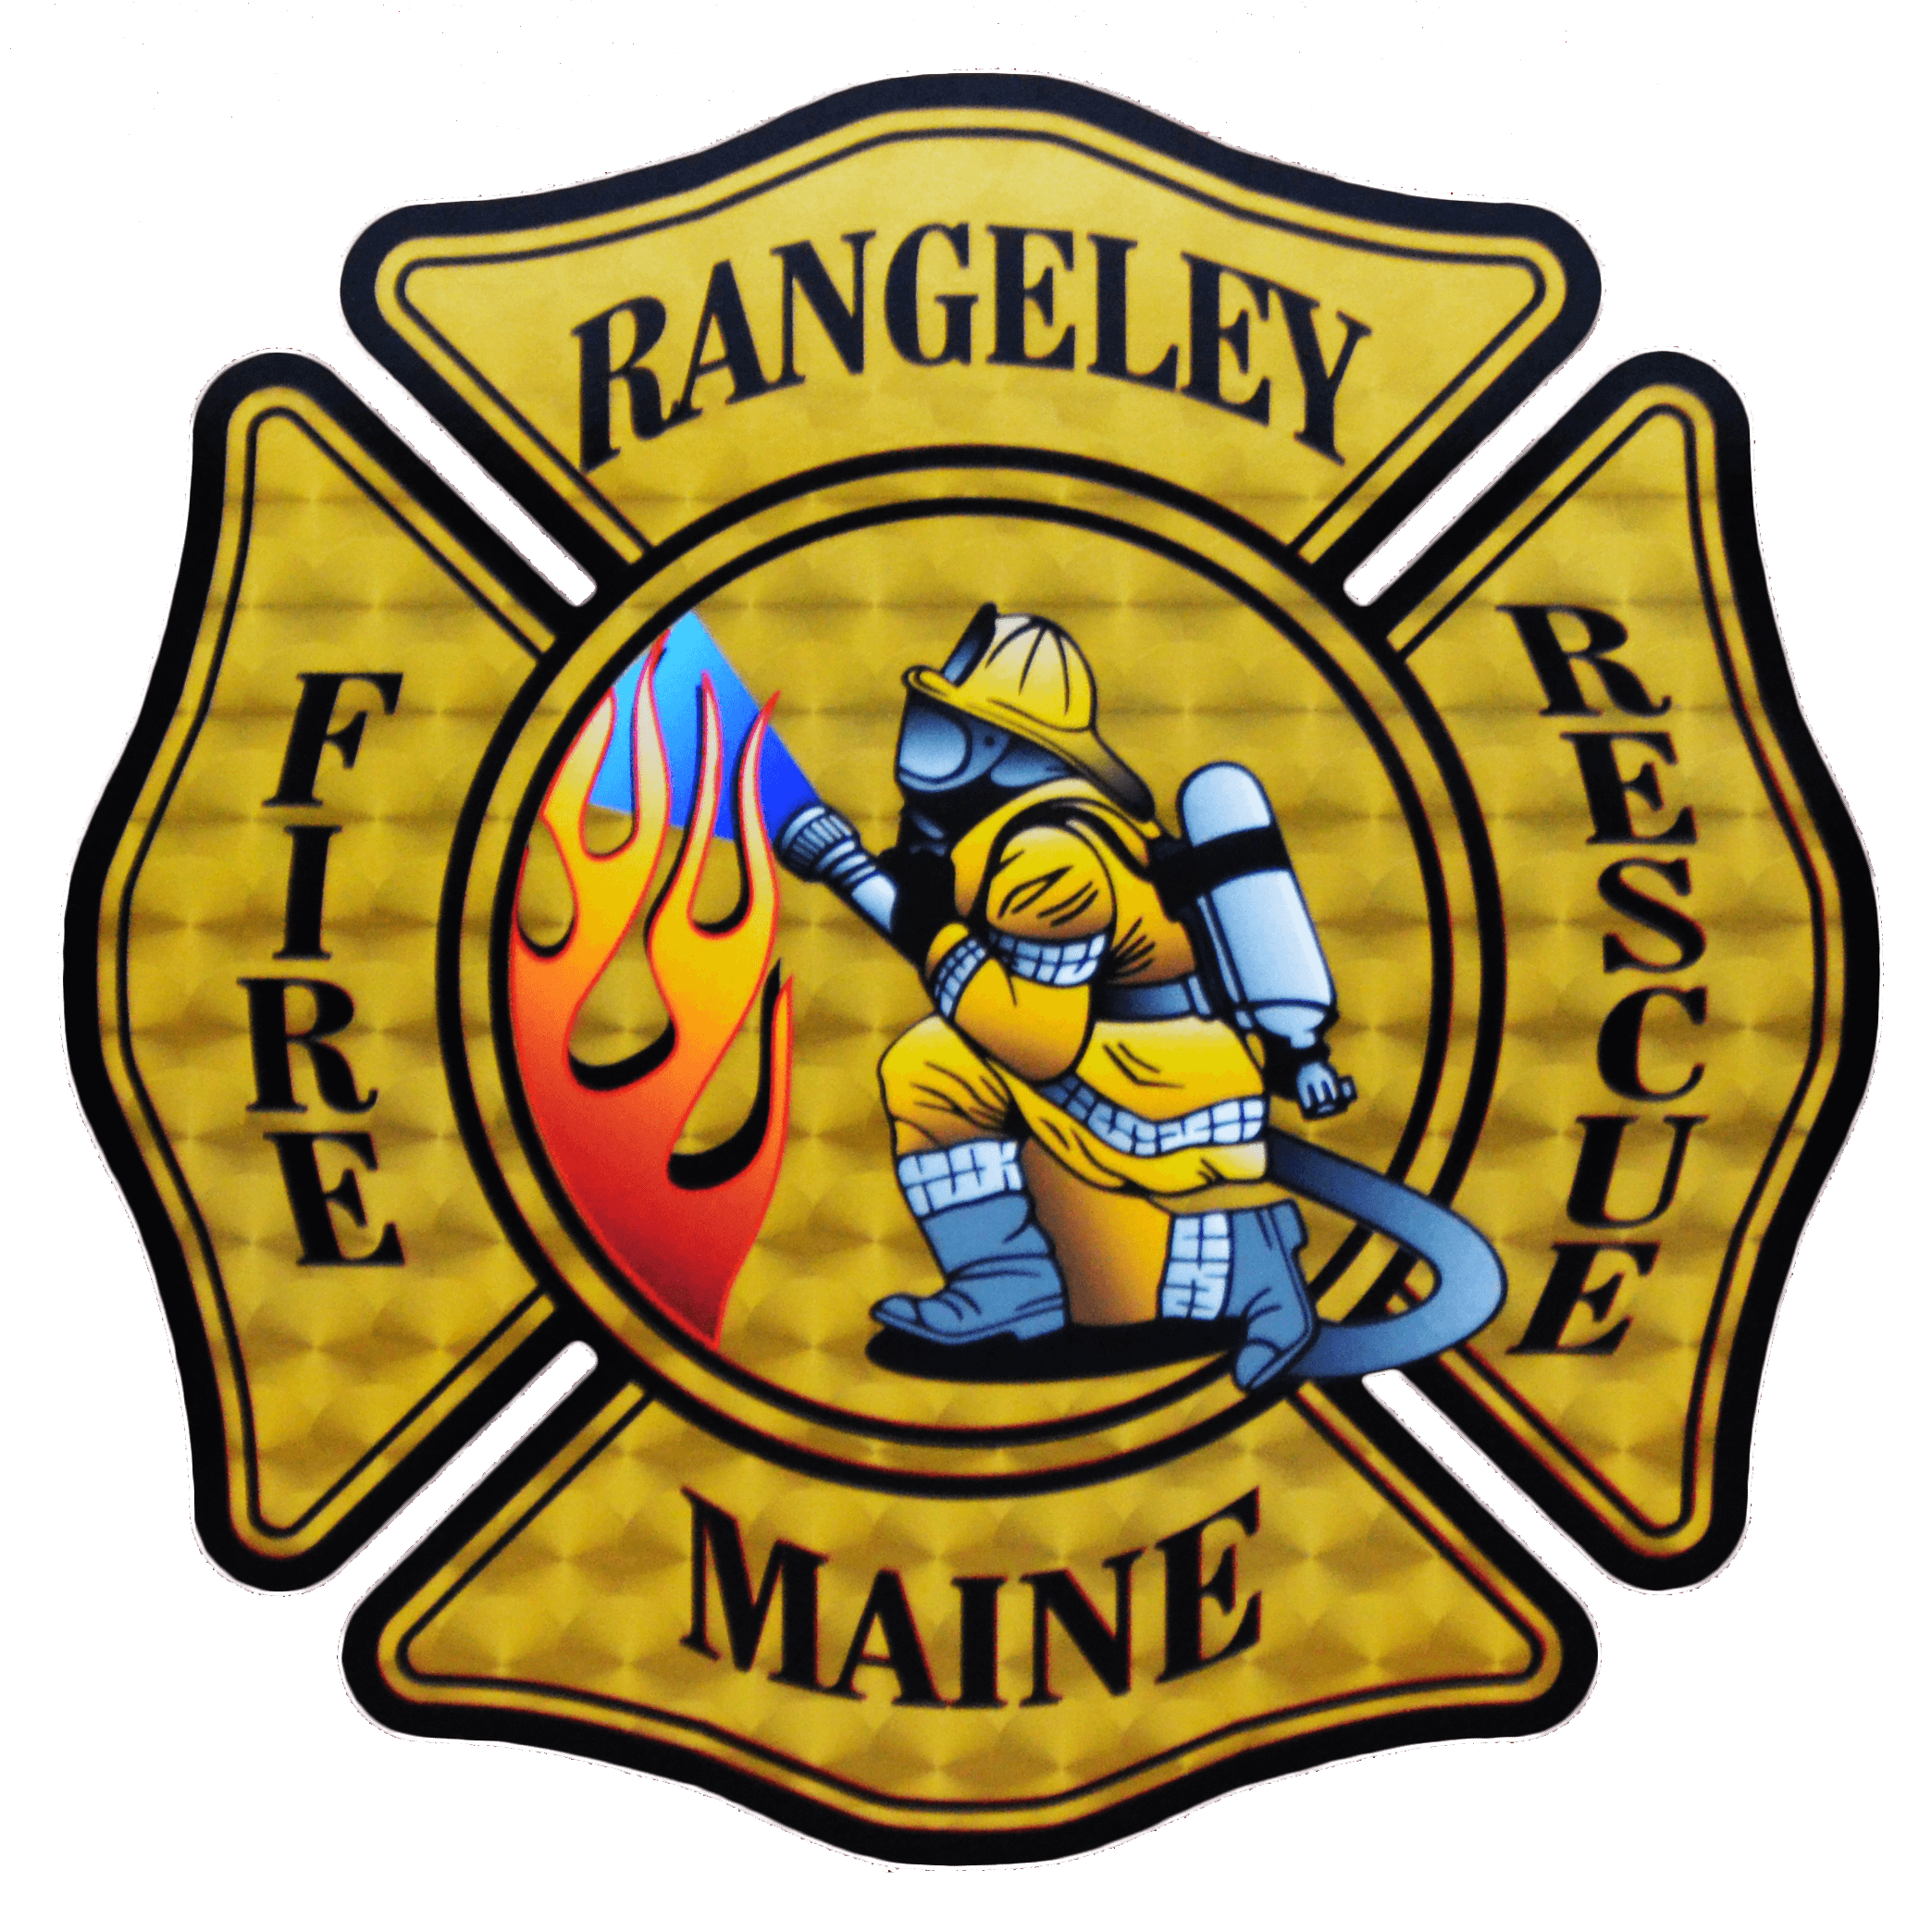 Cross of the Rangeley Fire and Rescue Department.